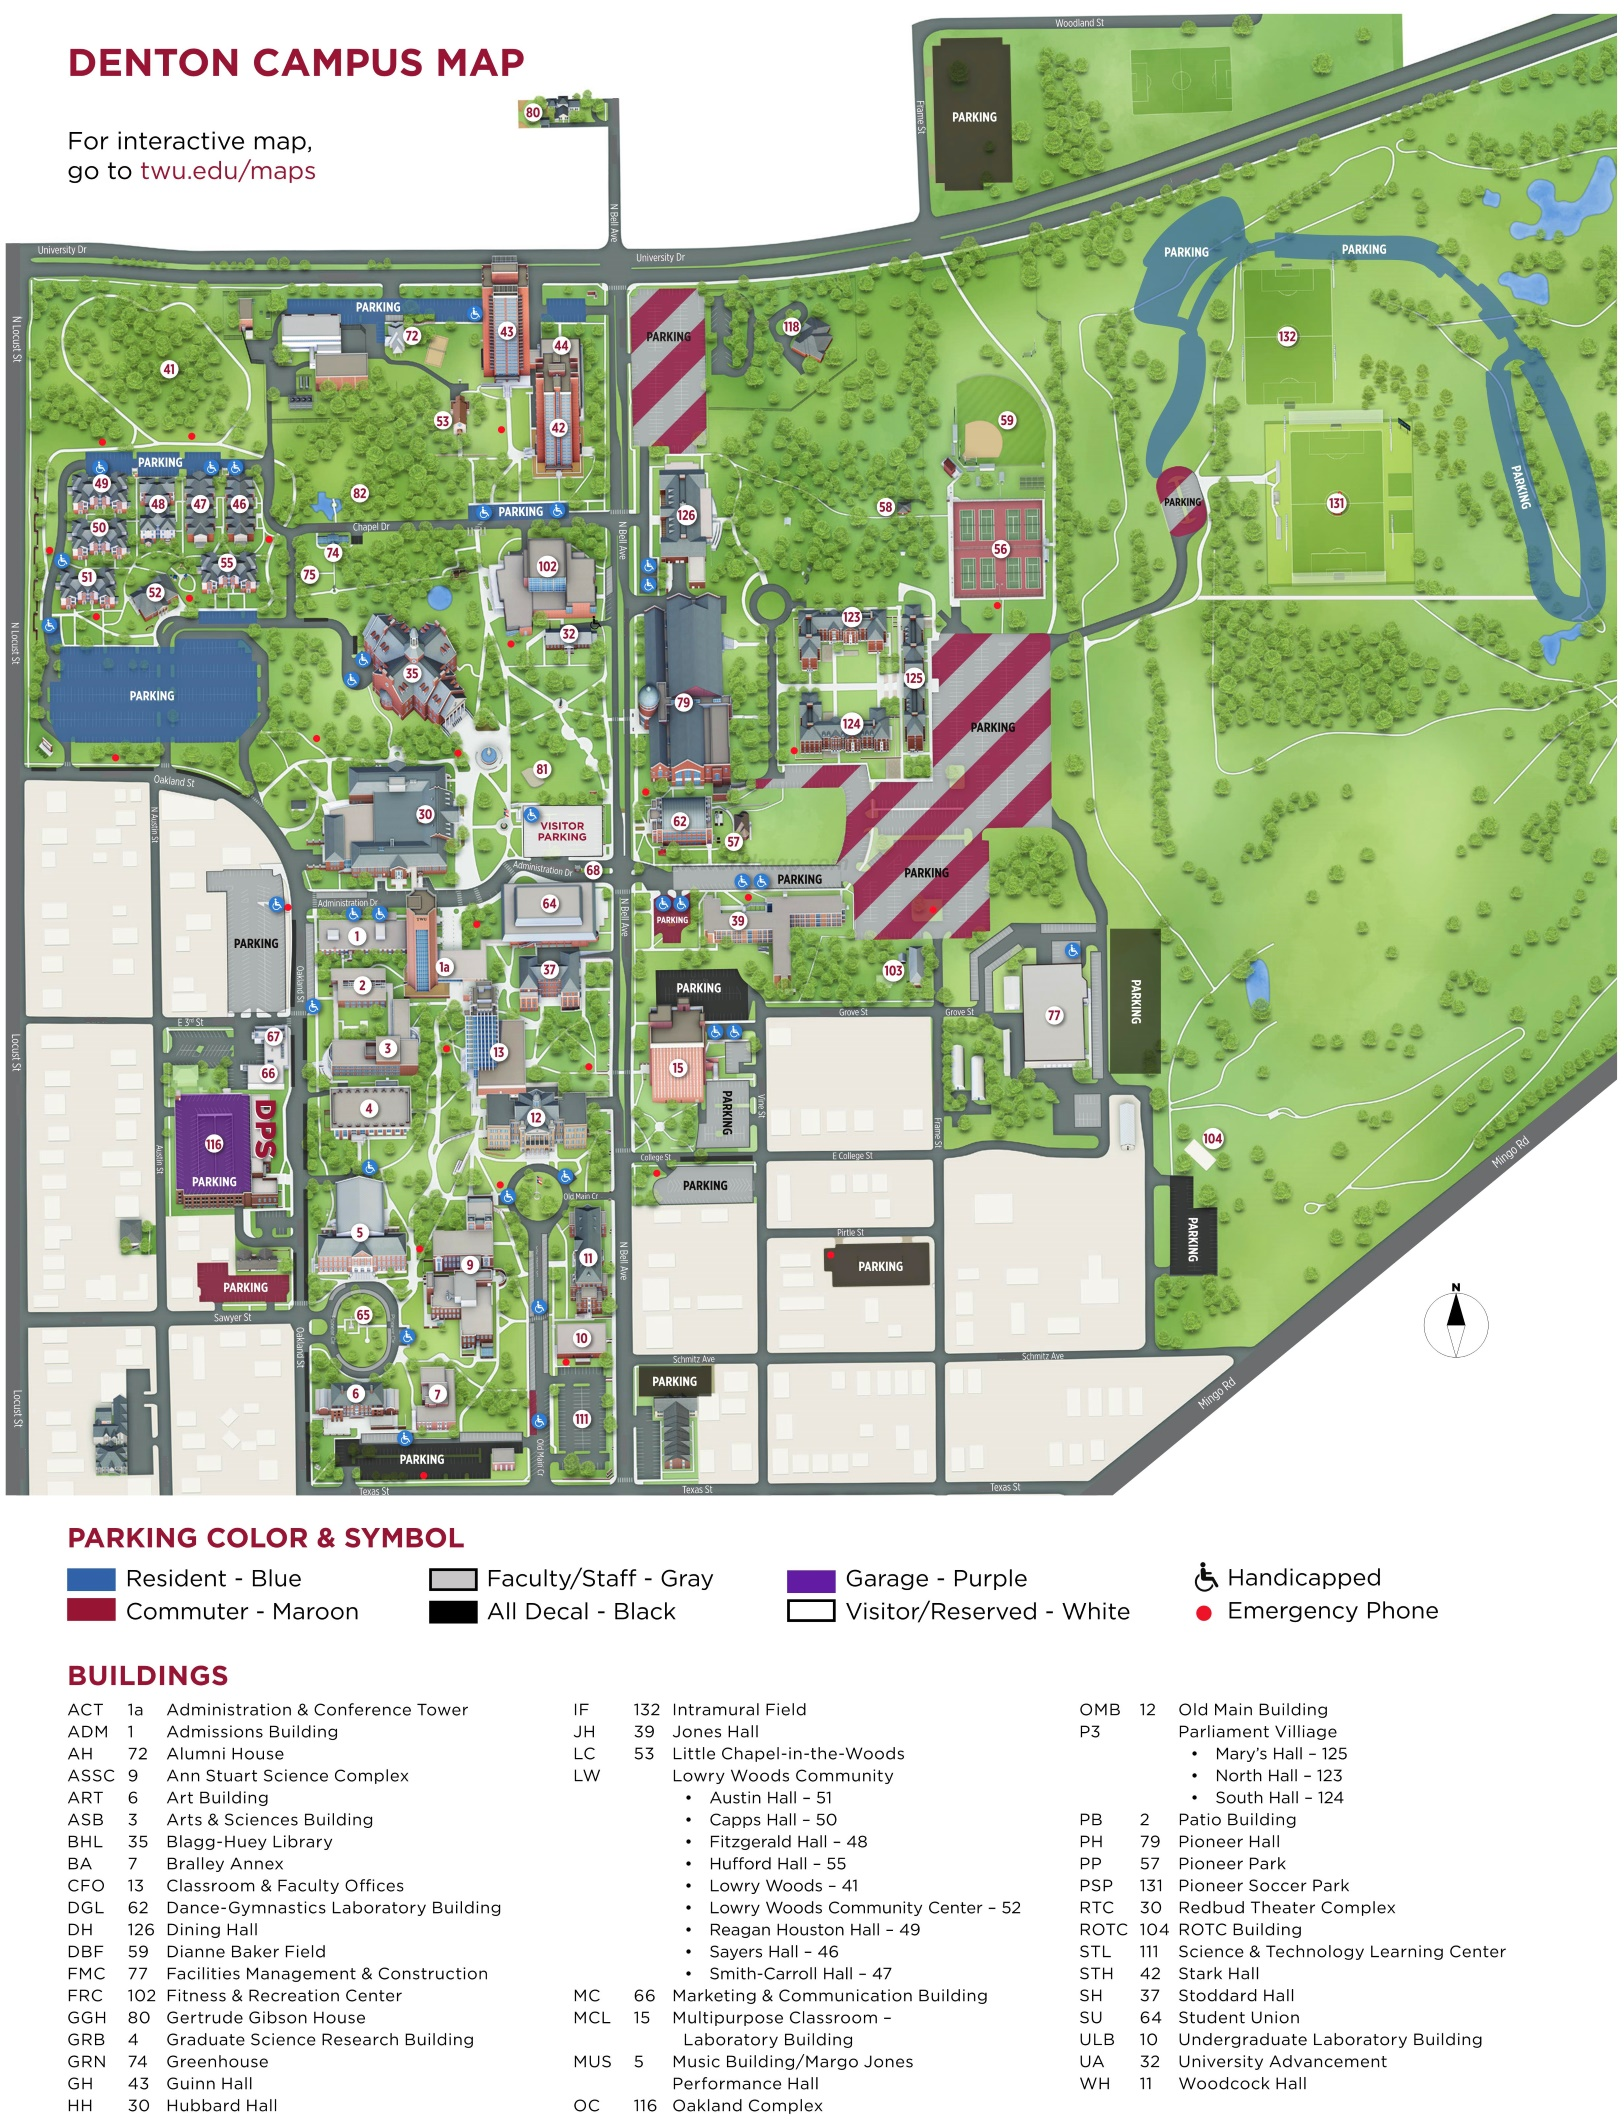 University Of Memphis Campus Map : university, memphis, campus, Texas, Woman's, University, Campus